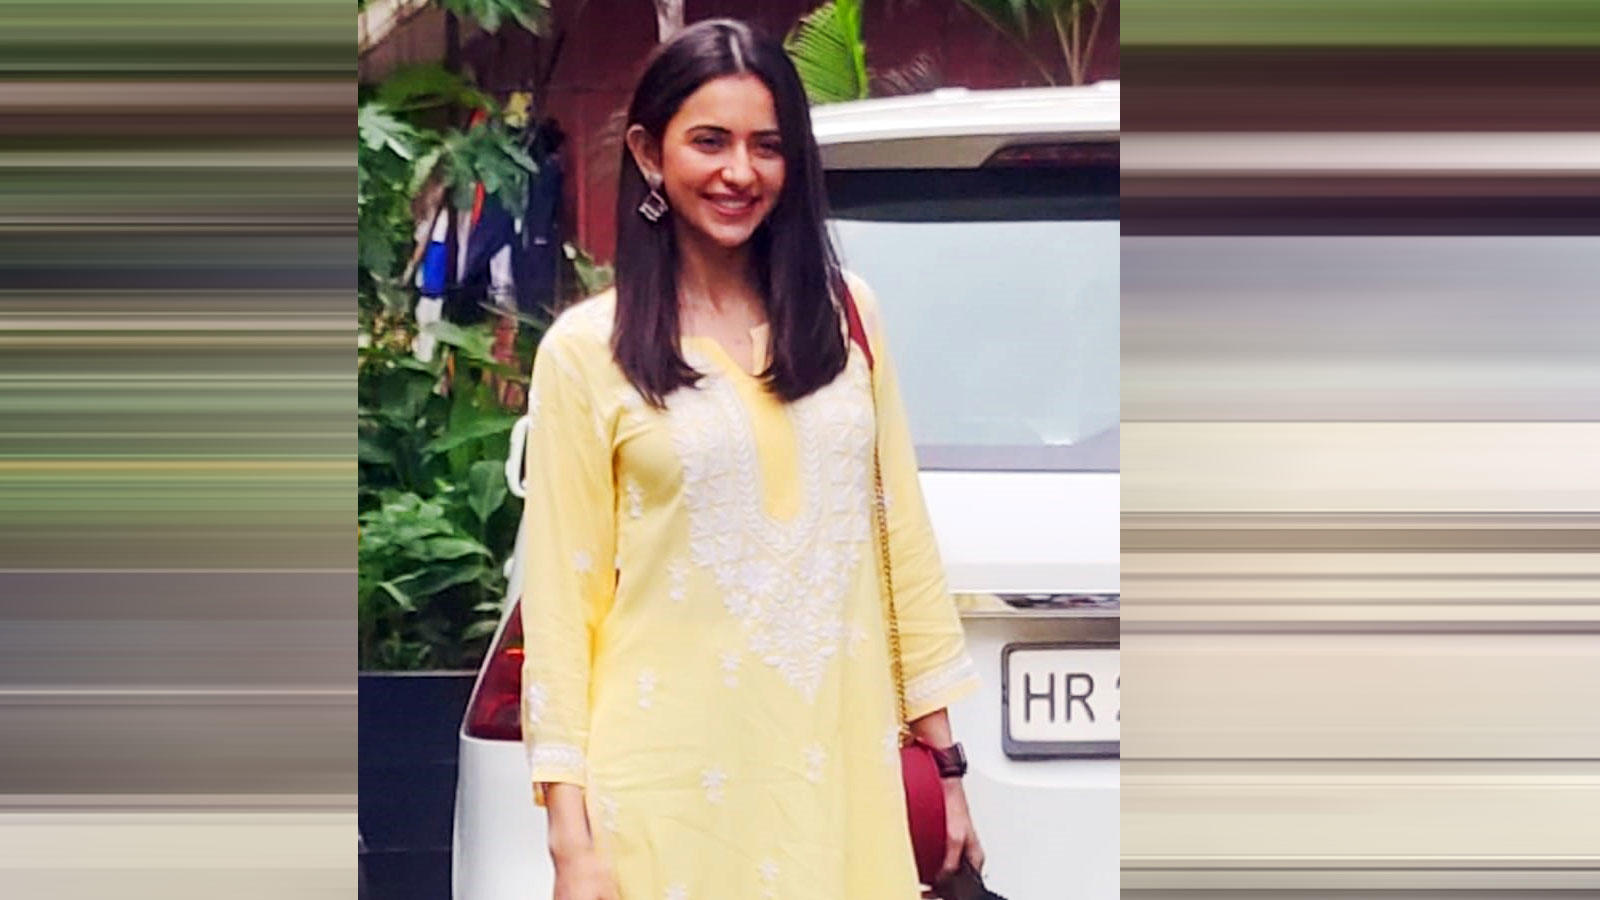 rakul-preet-singh-opts-for-a-bright-yellow-outfit-for-her-work-outing